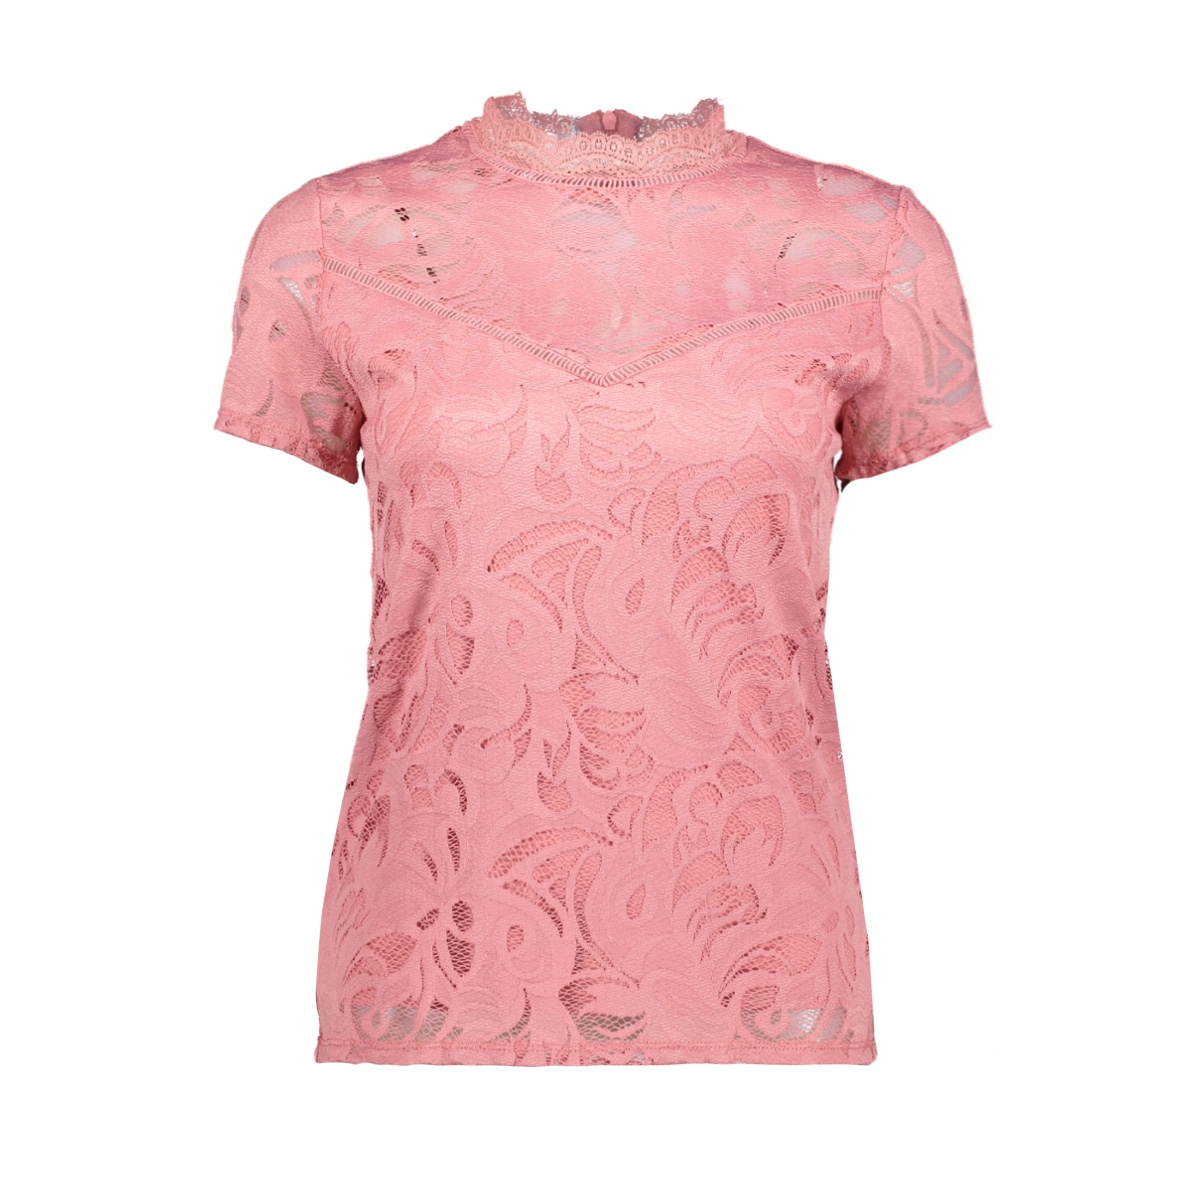 vistasia s/s lace top - fav 14052322 vila t-shirt brandied apricot